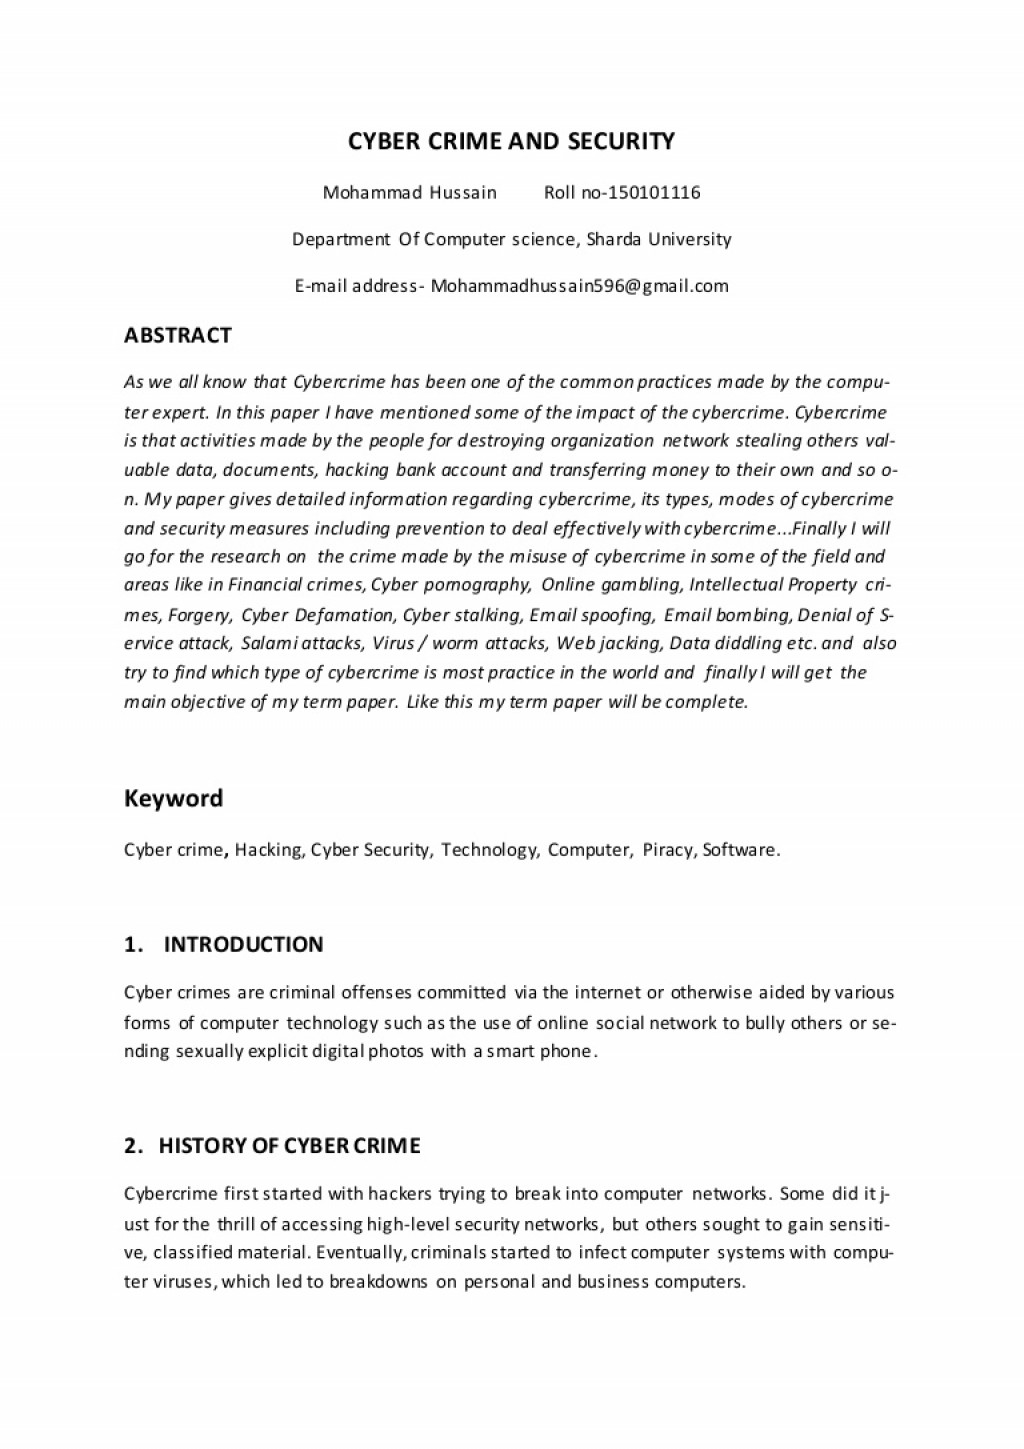 006 Termpaper Thumbnail Research Paper Cyber Security Wondrous Ieee Large